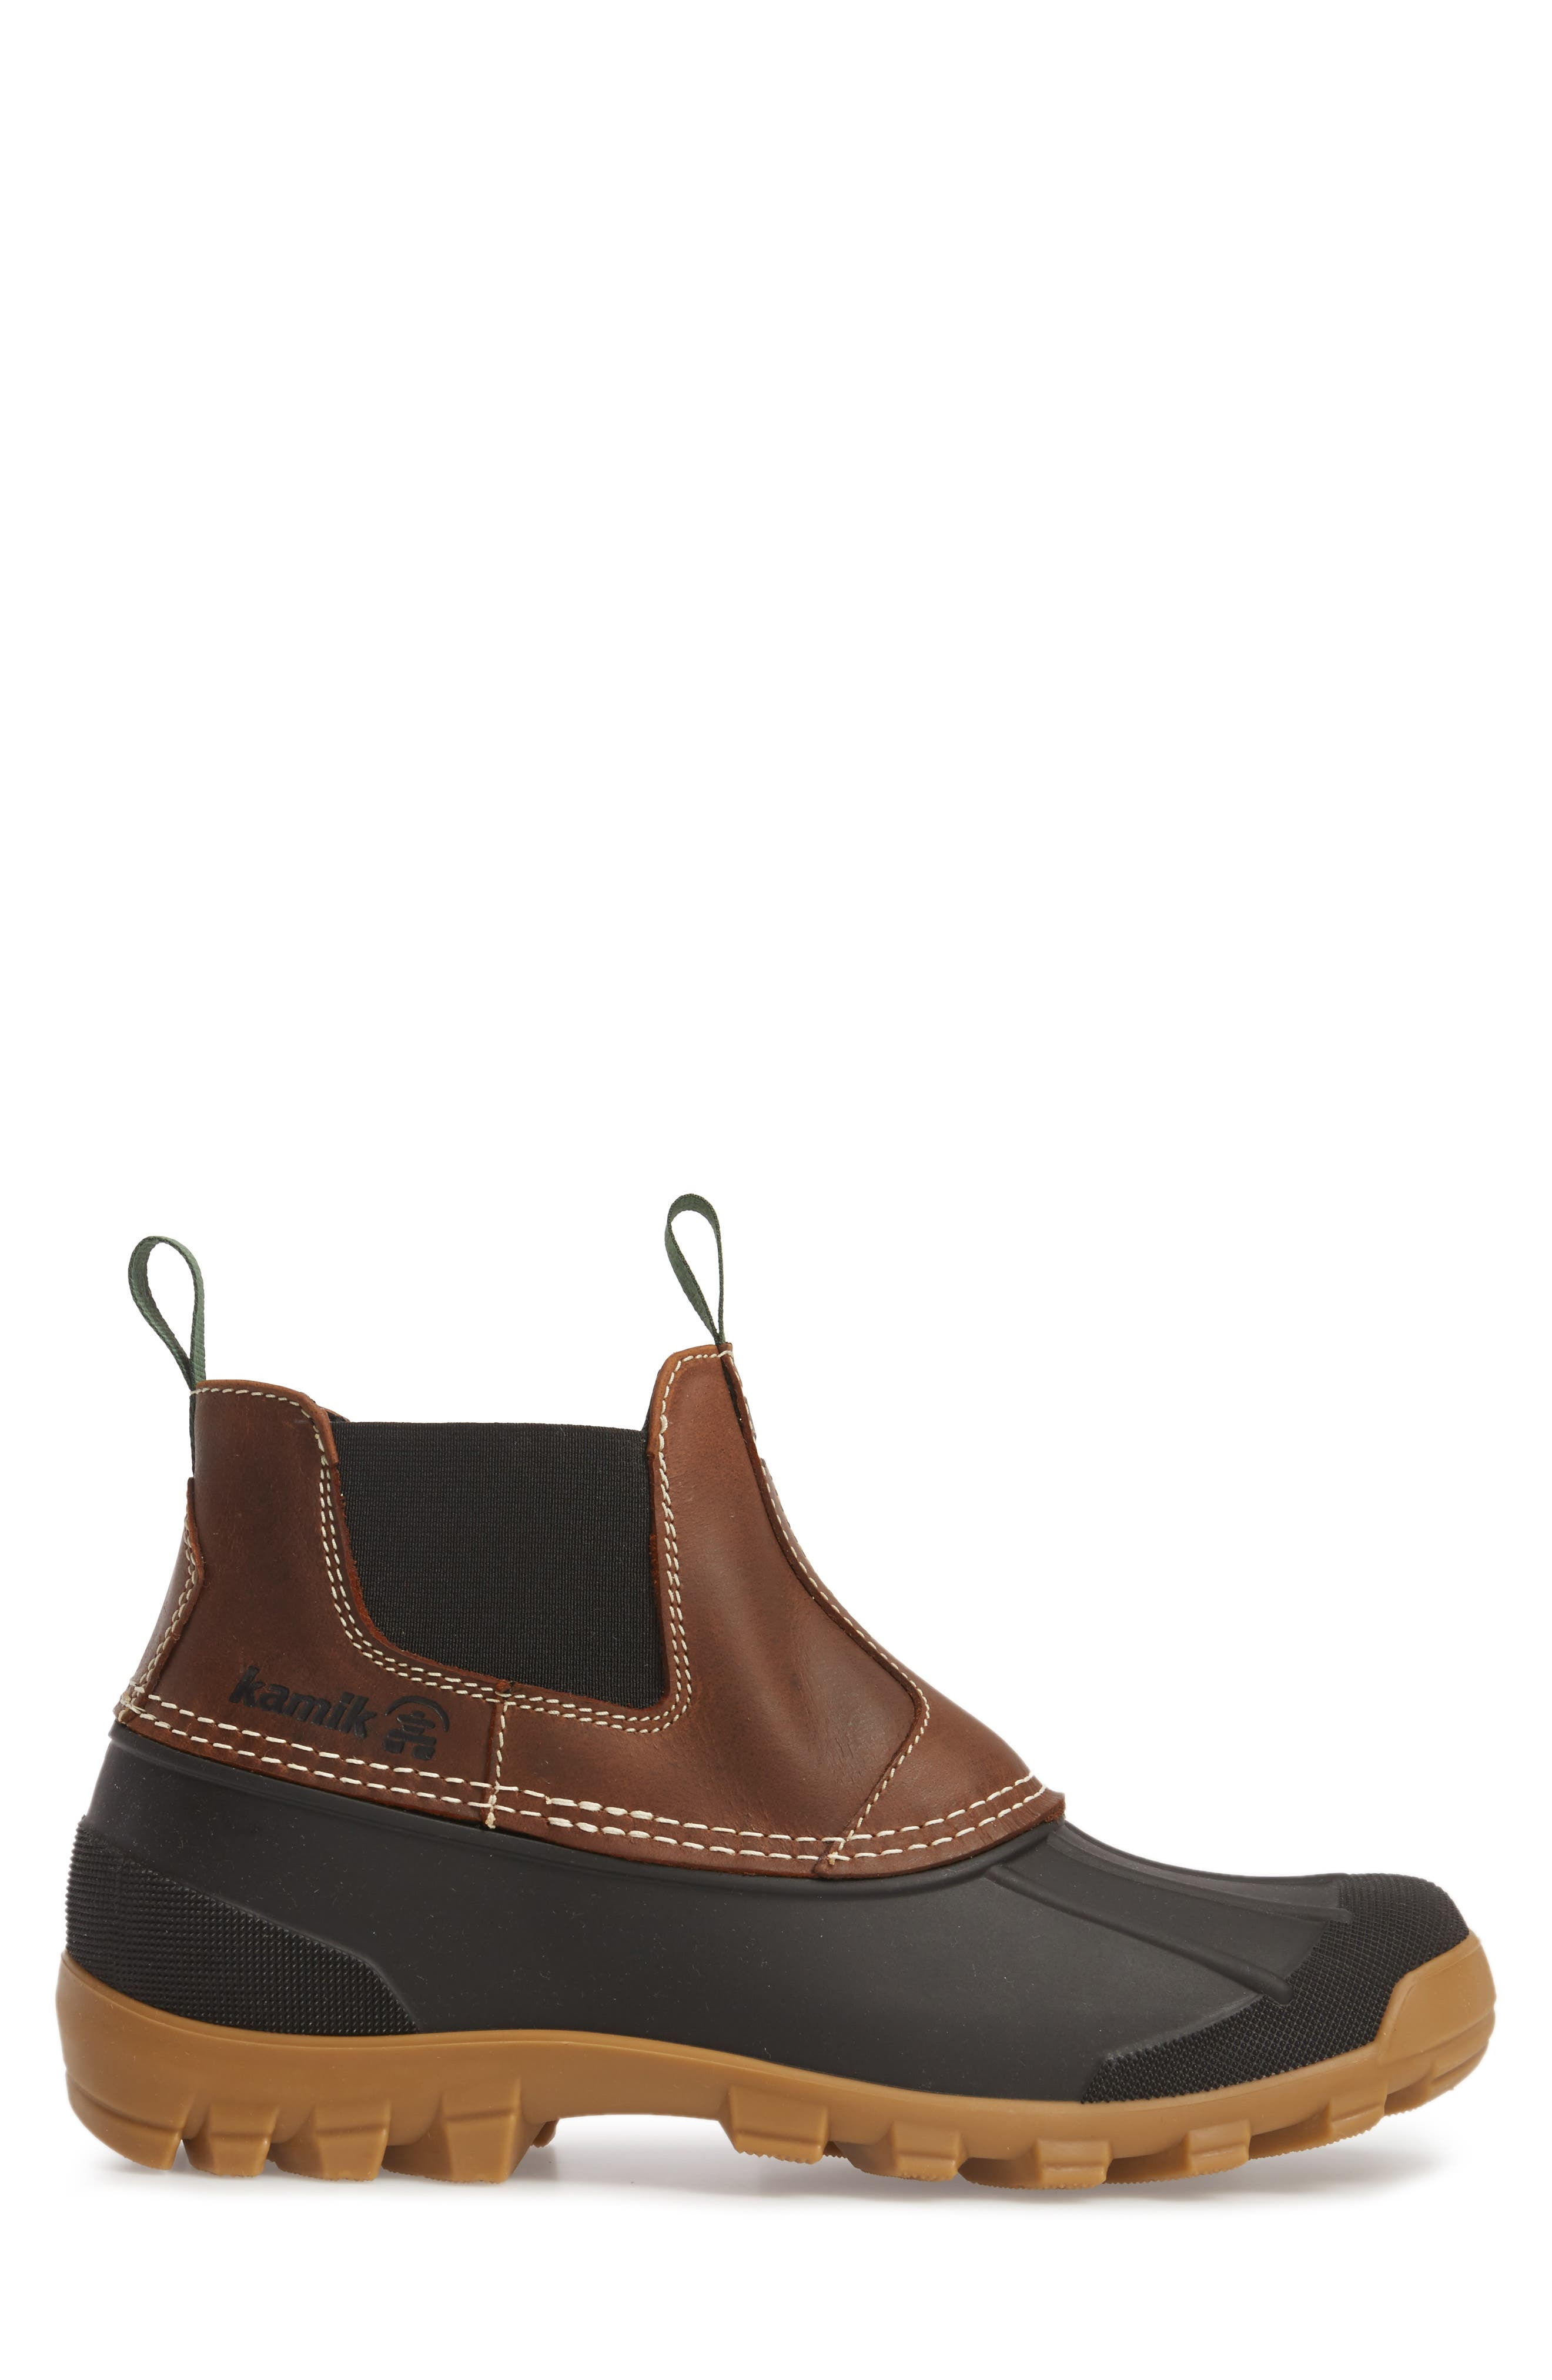 Yukon Chelsea Boot,                             Alternate thumbnail 3, color,                             DARK BROWN LEATHER